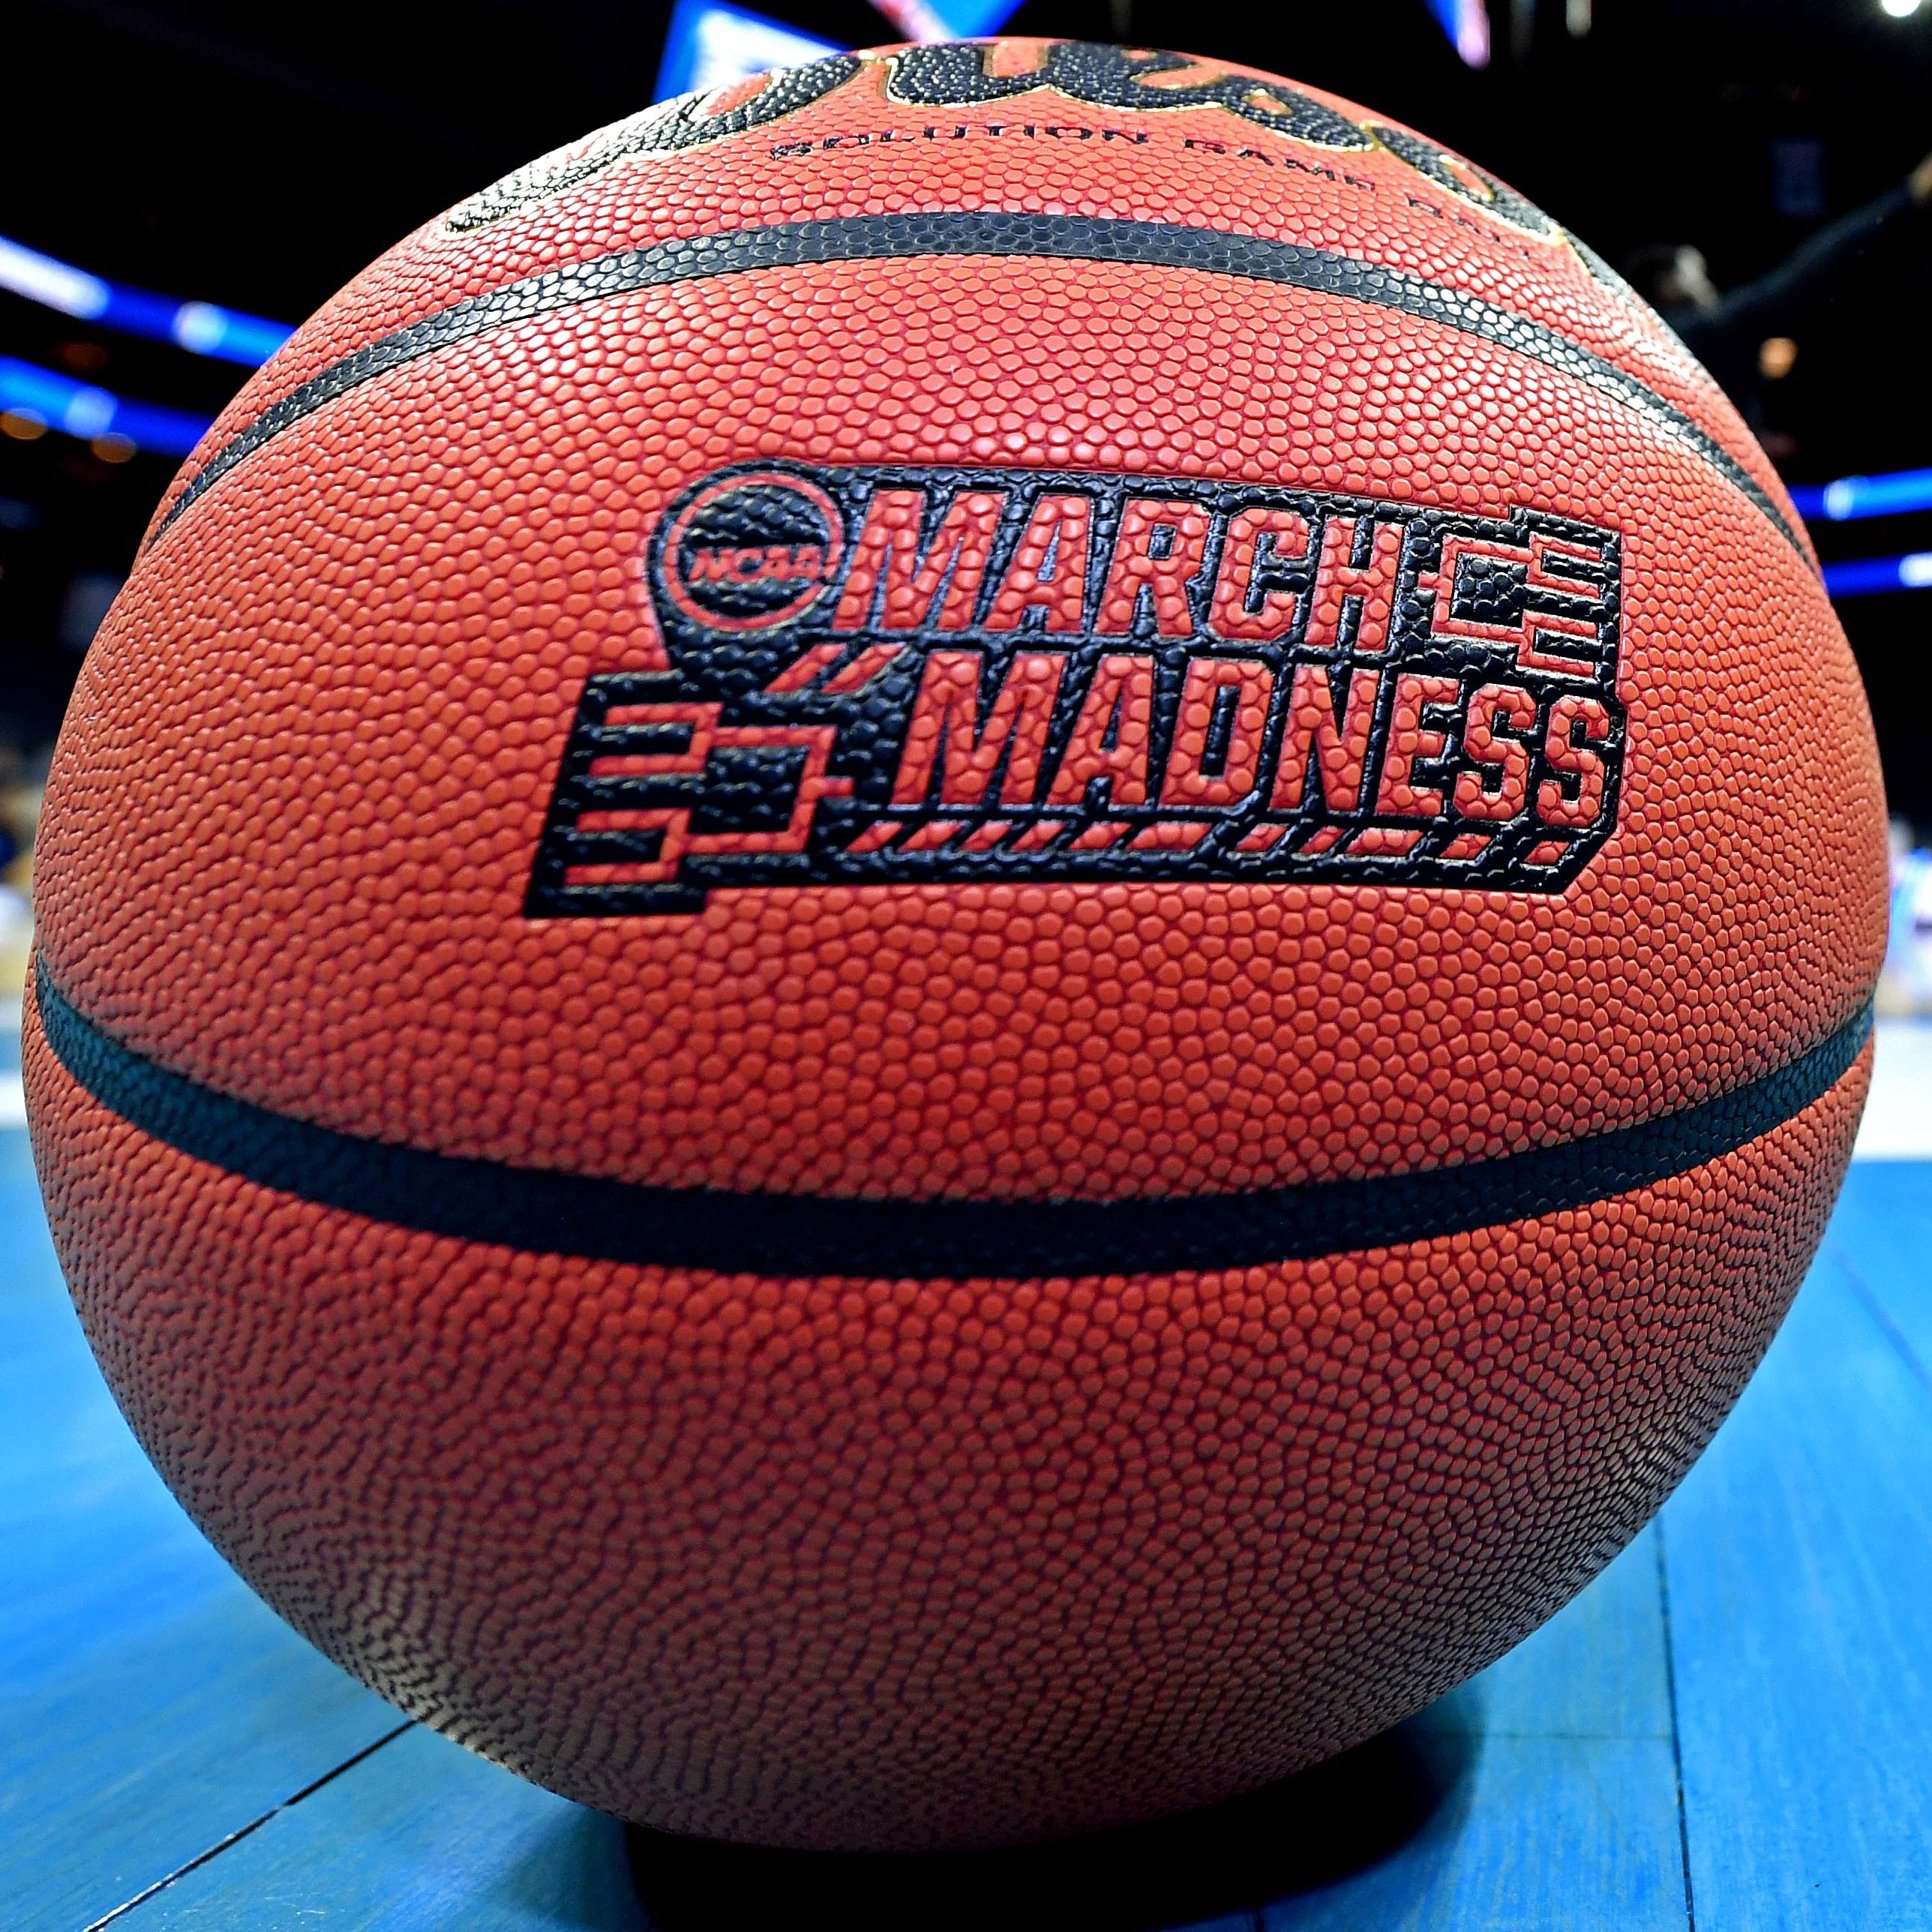 Play an NCAA bracket challenge with us to celebrate March Madness